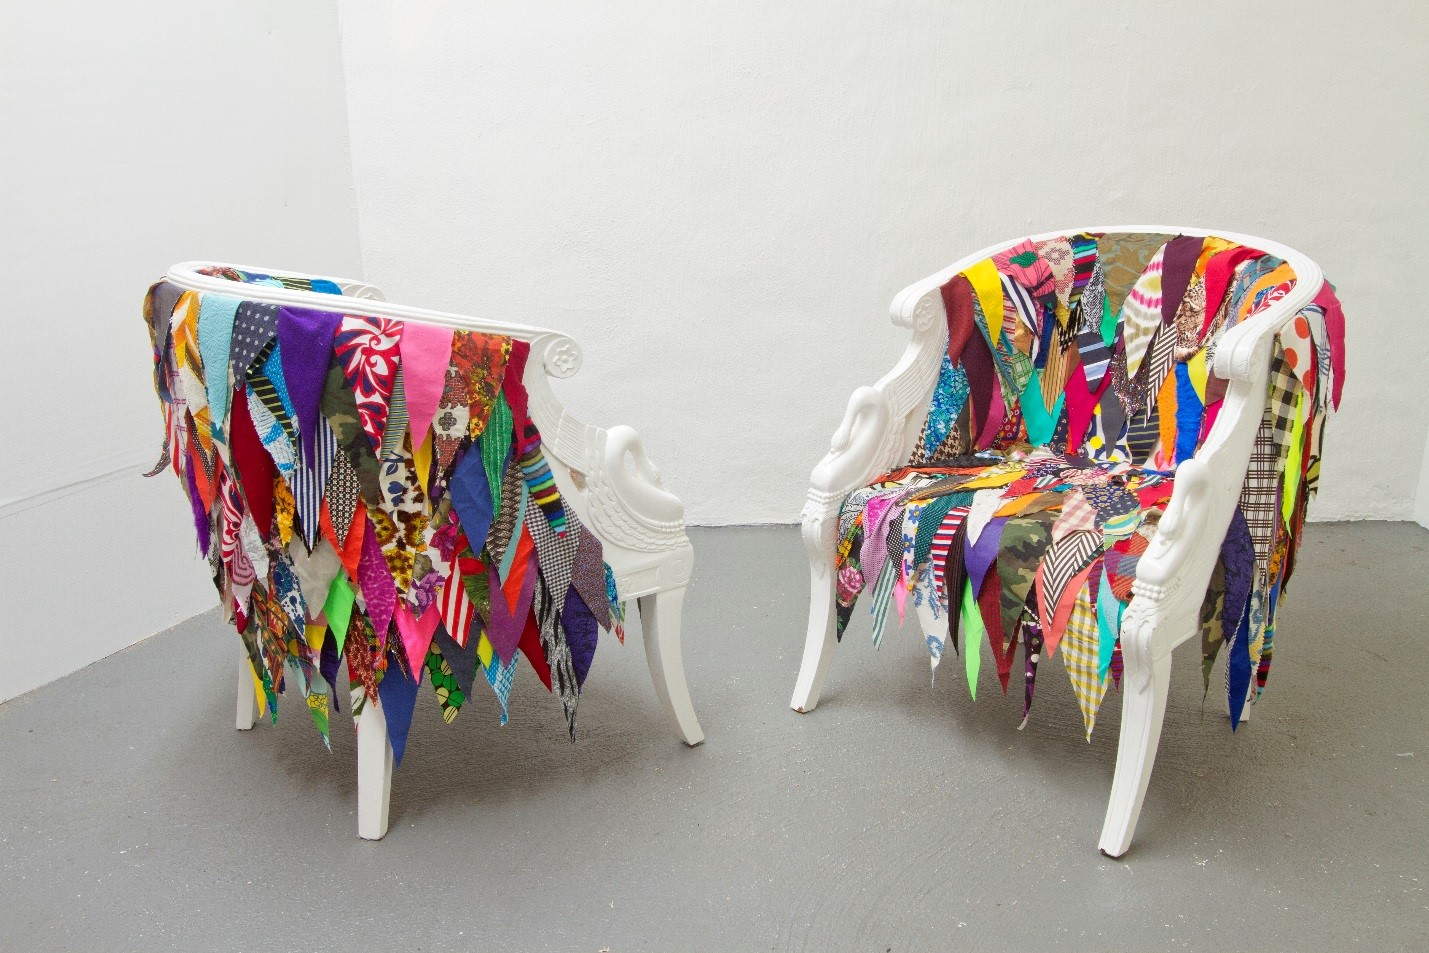 The Chair Show at ArtsWestchester Gallery